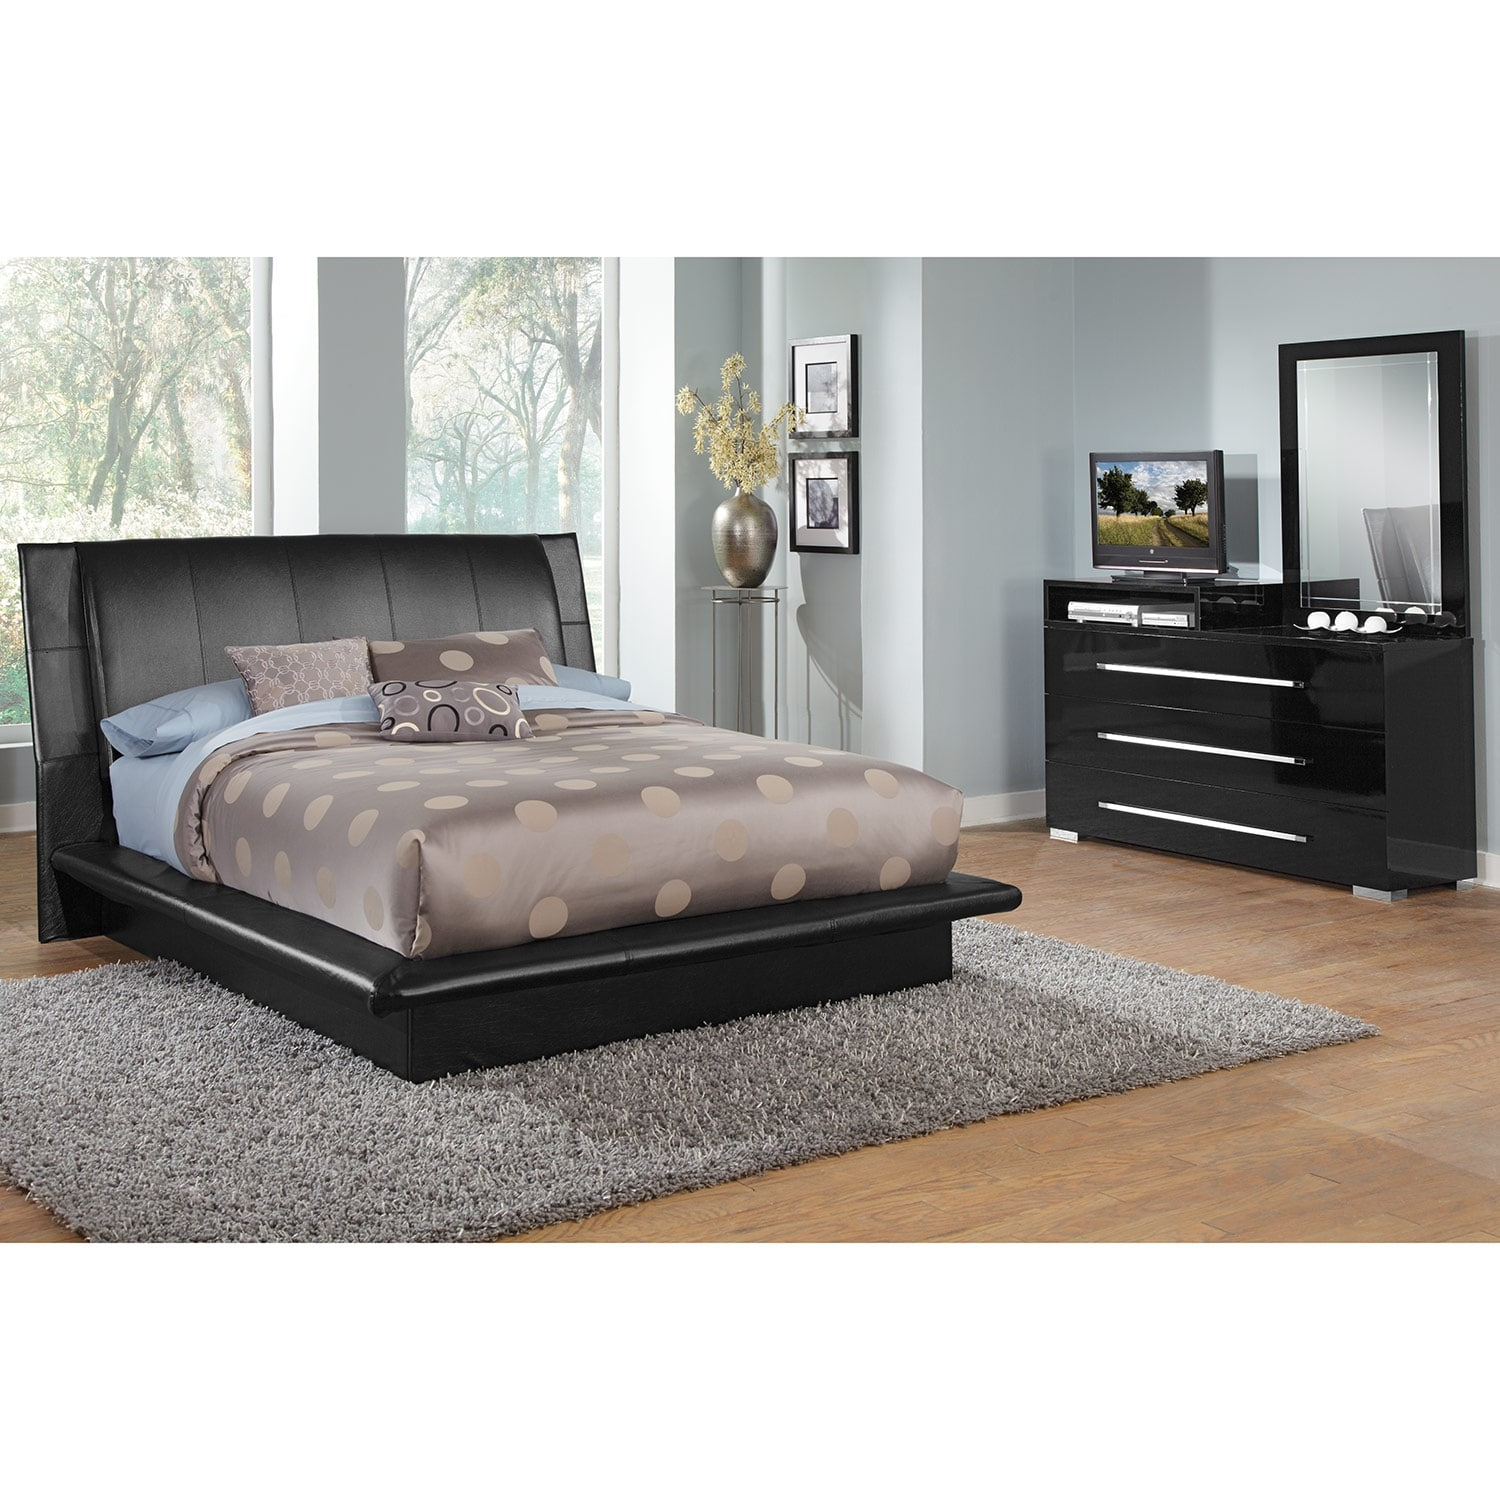 Dimora Black 5 Pc. Queen Bedroom  Value City Furniture